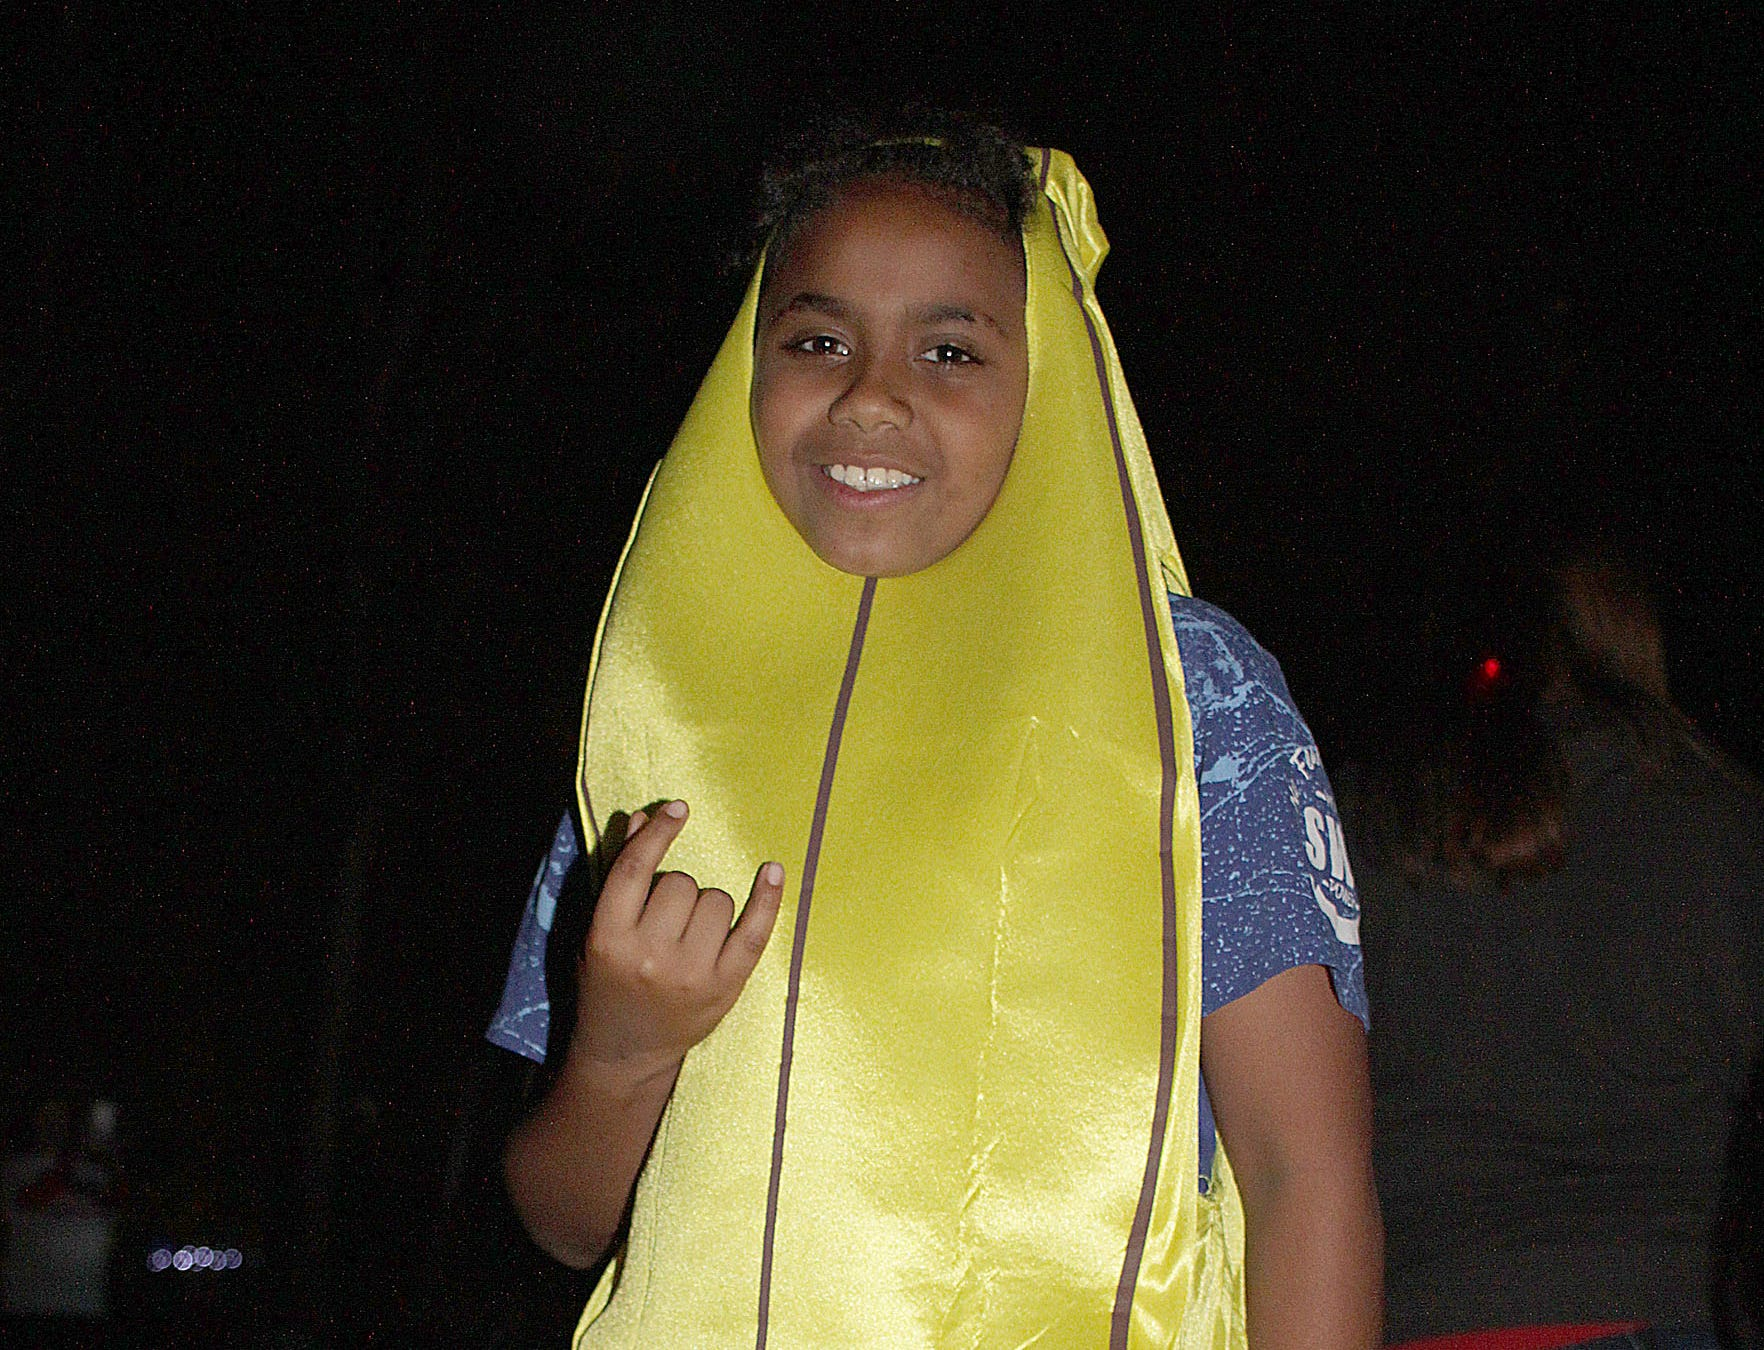 Devonte Harris went trick or treating as a banana at Drakes Creek Park in Hendesonville, TN on Tuesday, October 30, 2018.